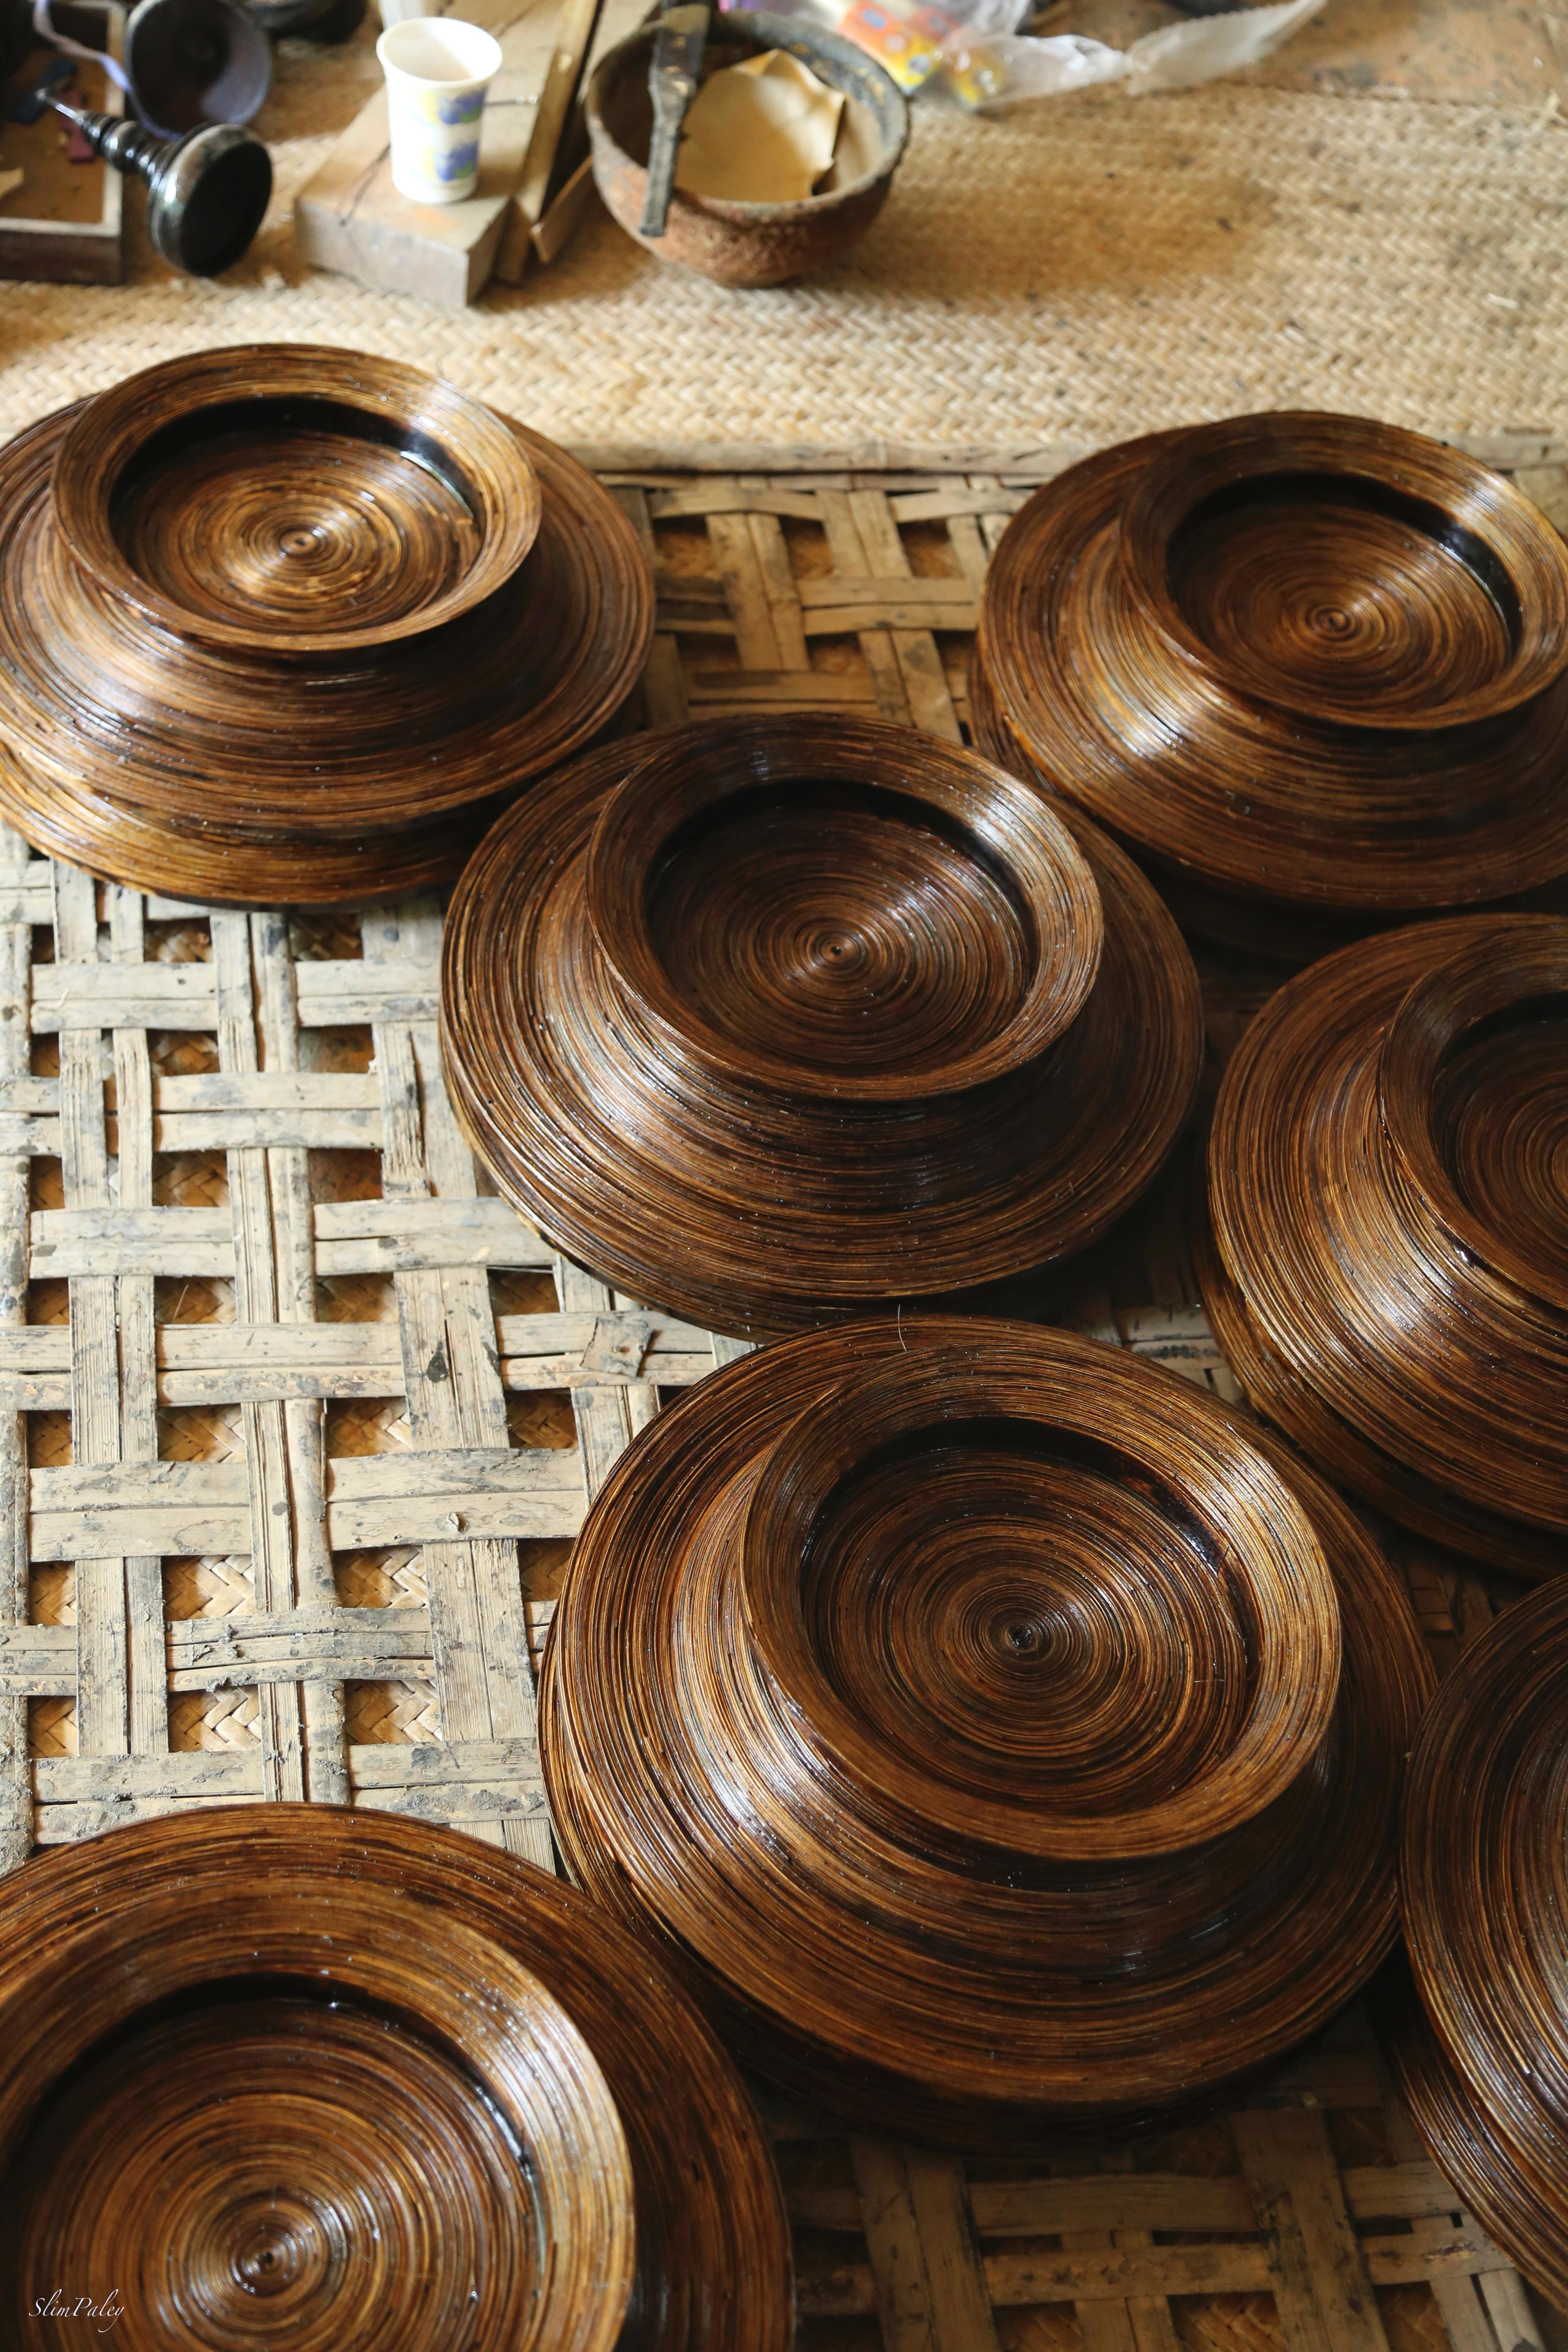 bamboo being made into lacquer bowls slimpaley.com